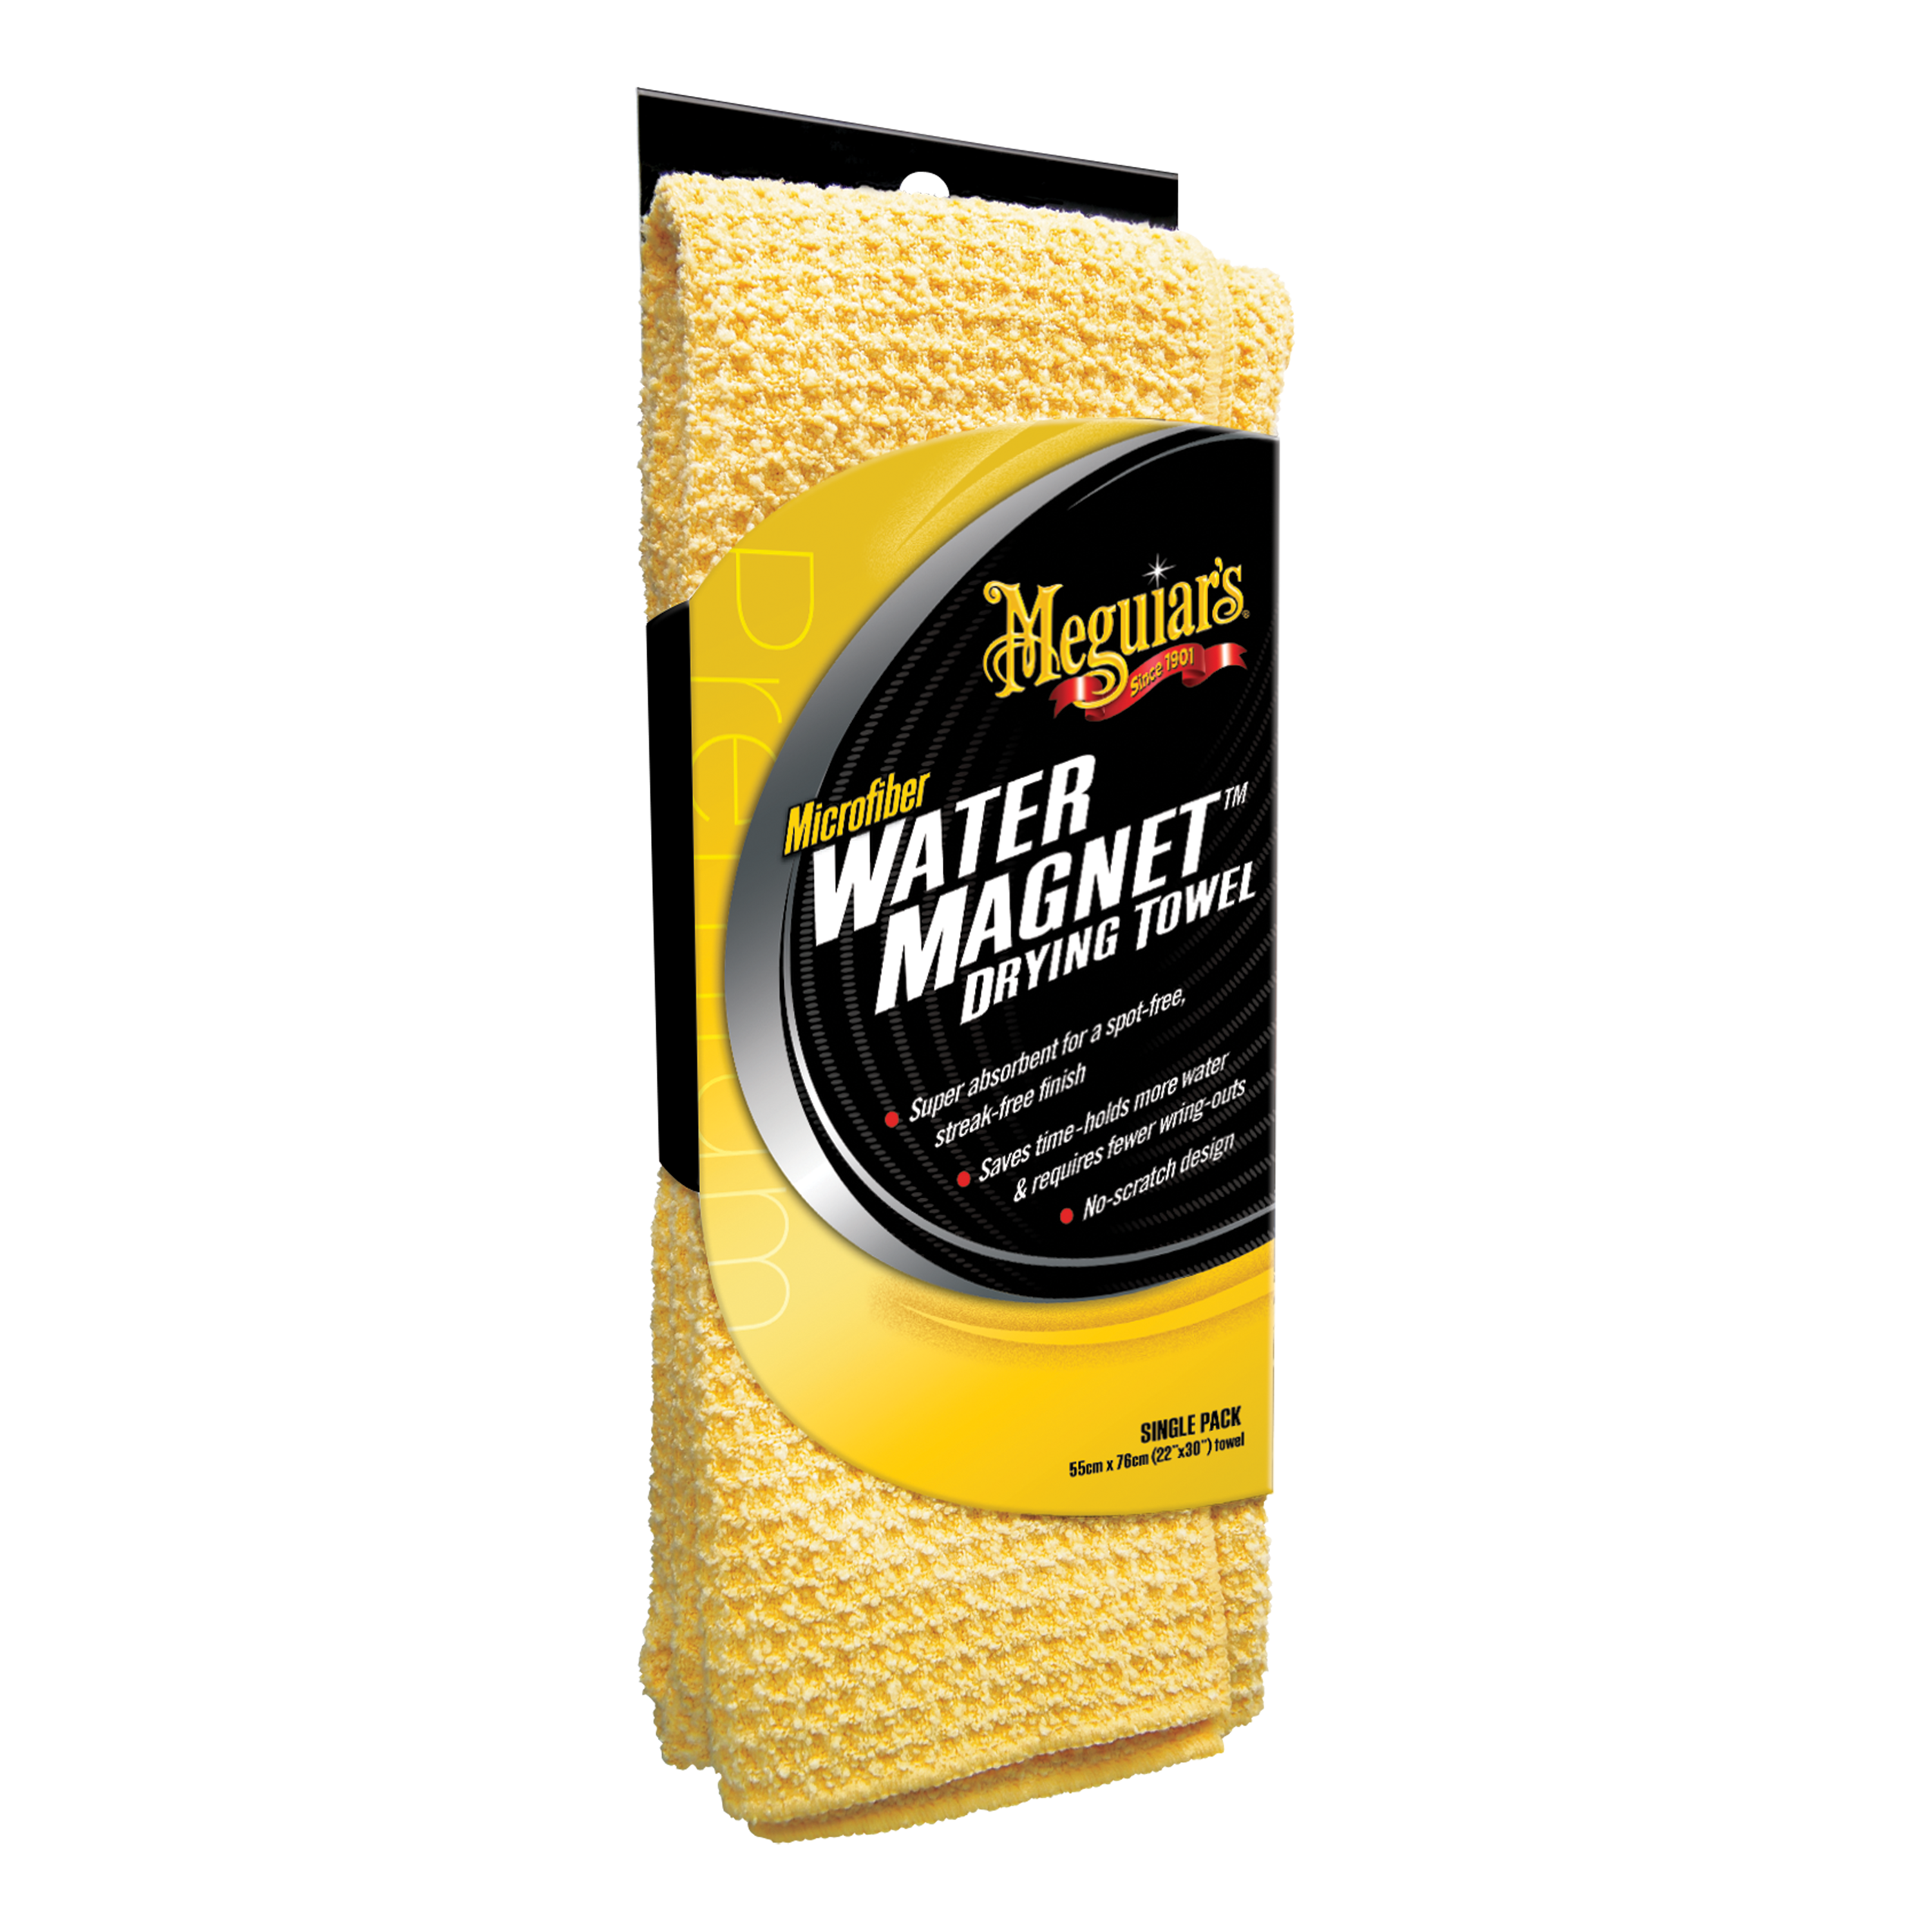 Image result for Meguiar's X2000 Water Magnet Microfiber Drying Towel